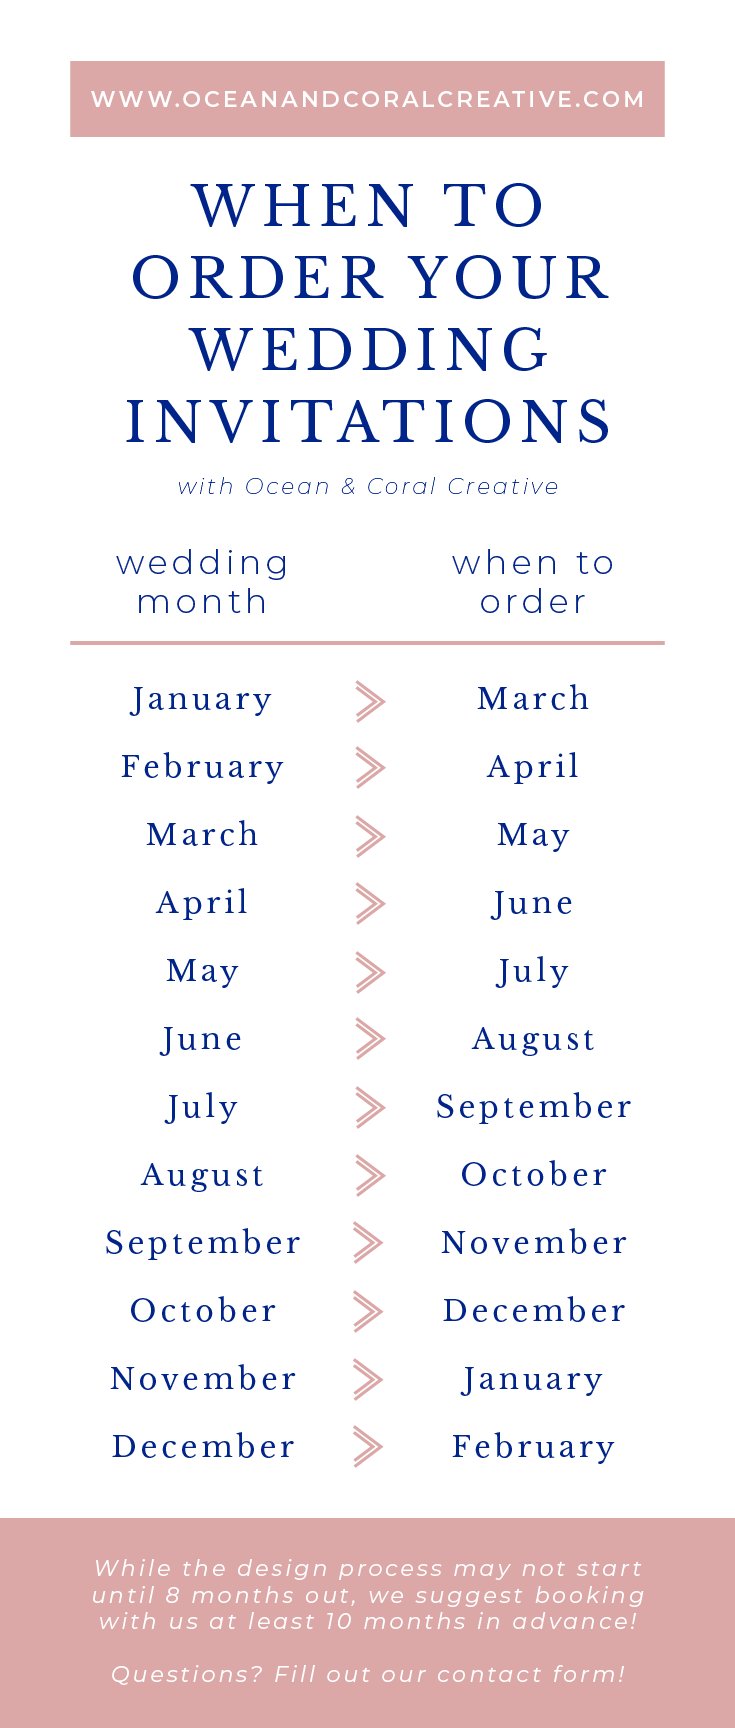 When to order your wedding invitations